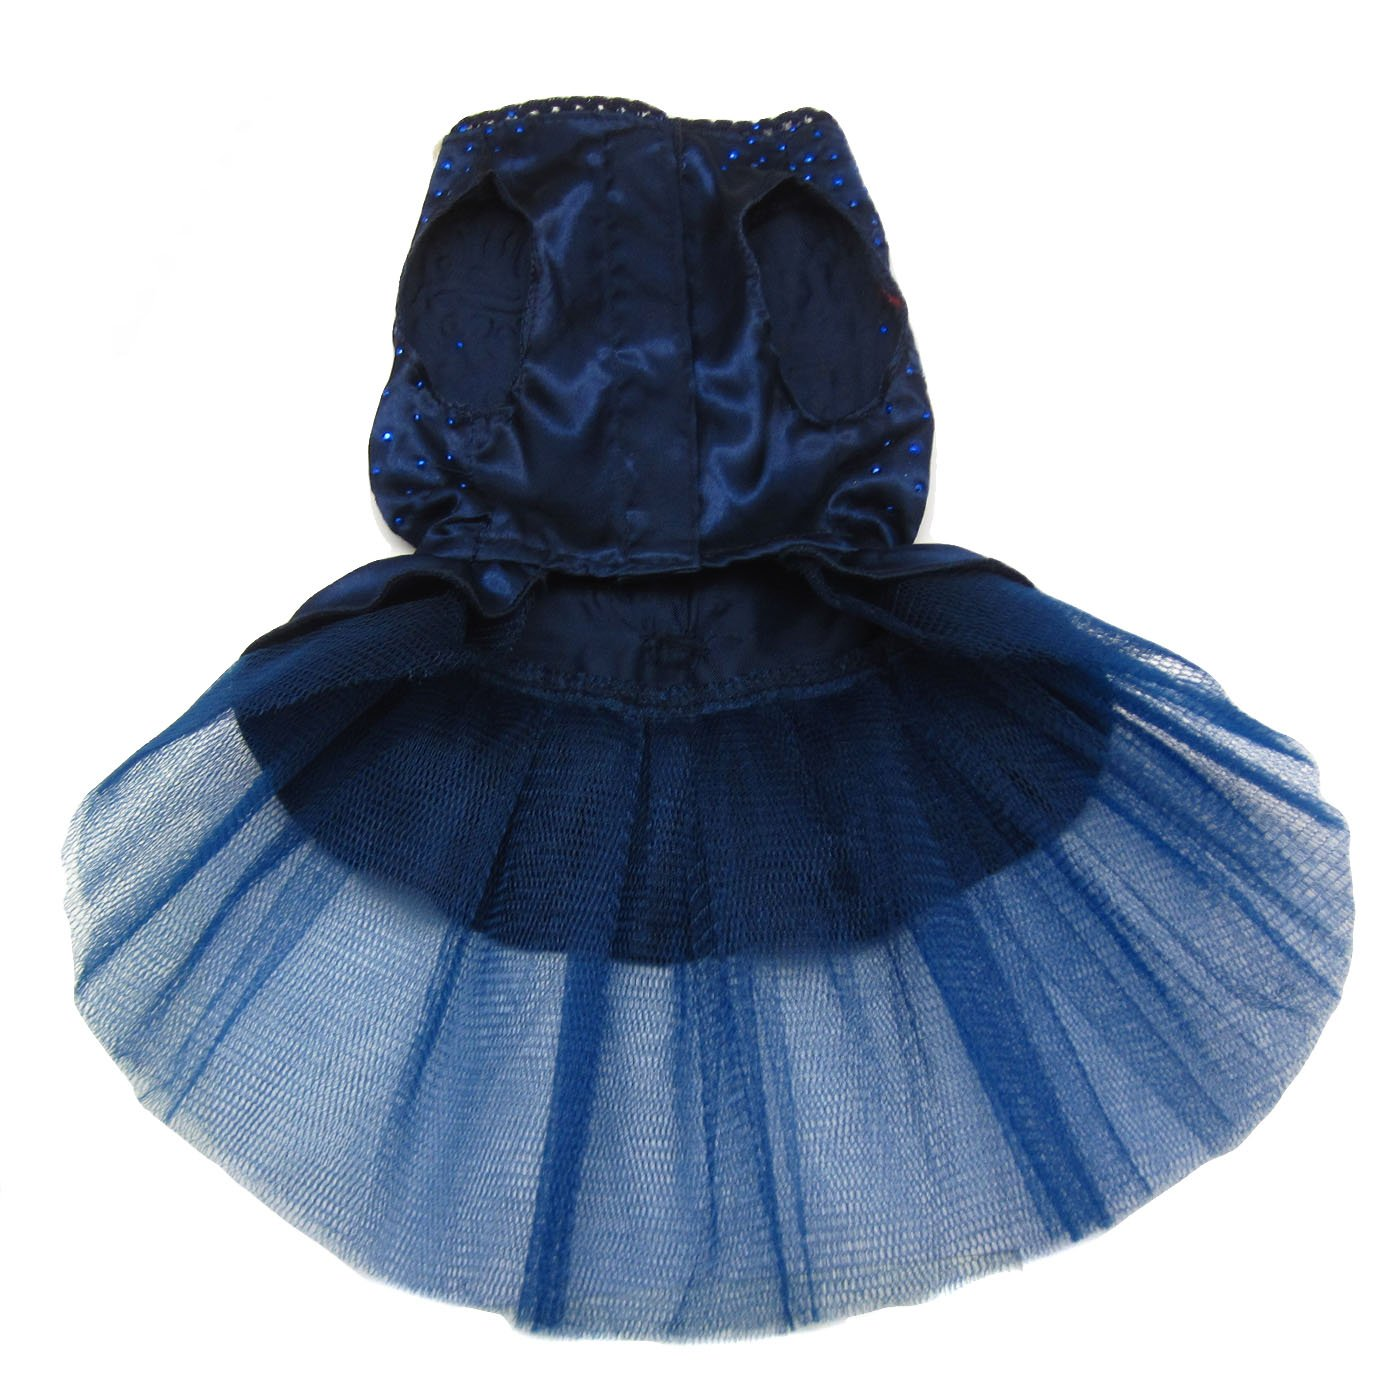 Alfie Pet by Petoga Couture - Shirley Tutu Party Dress - Color: Navy, Size: Small by Alfie (Image #3)